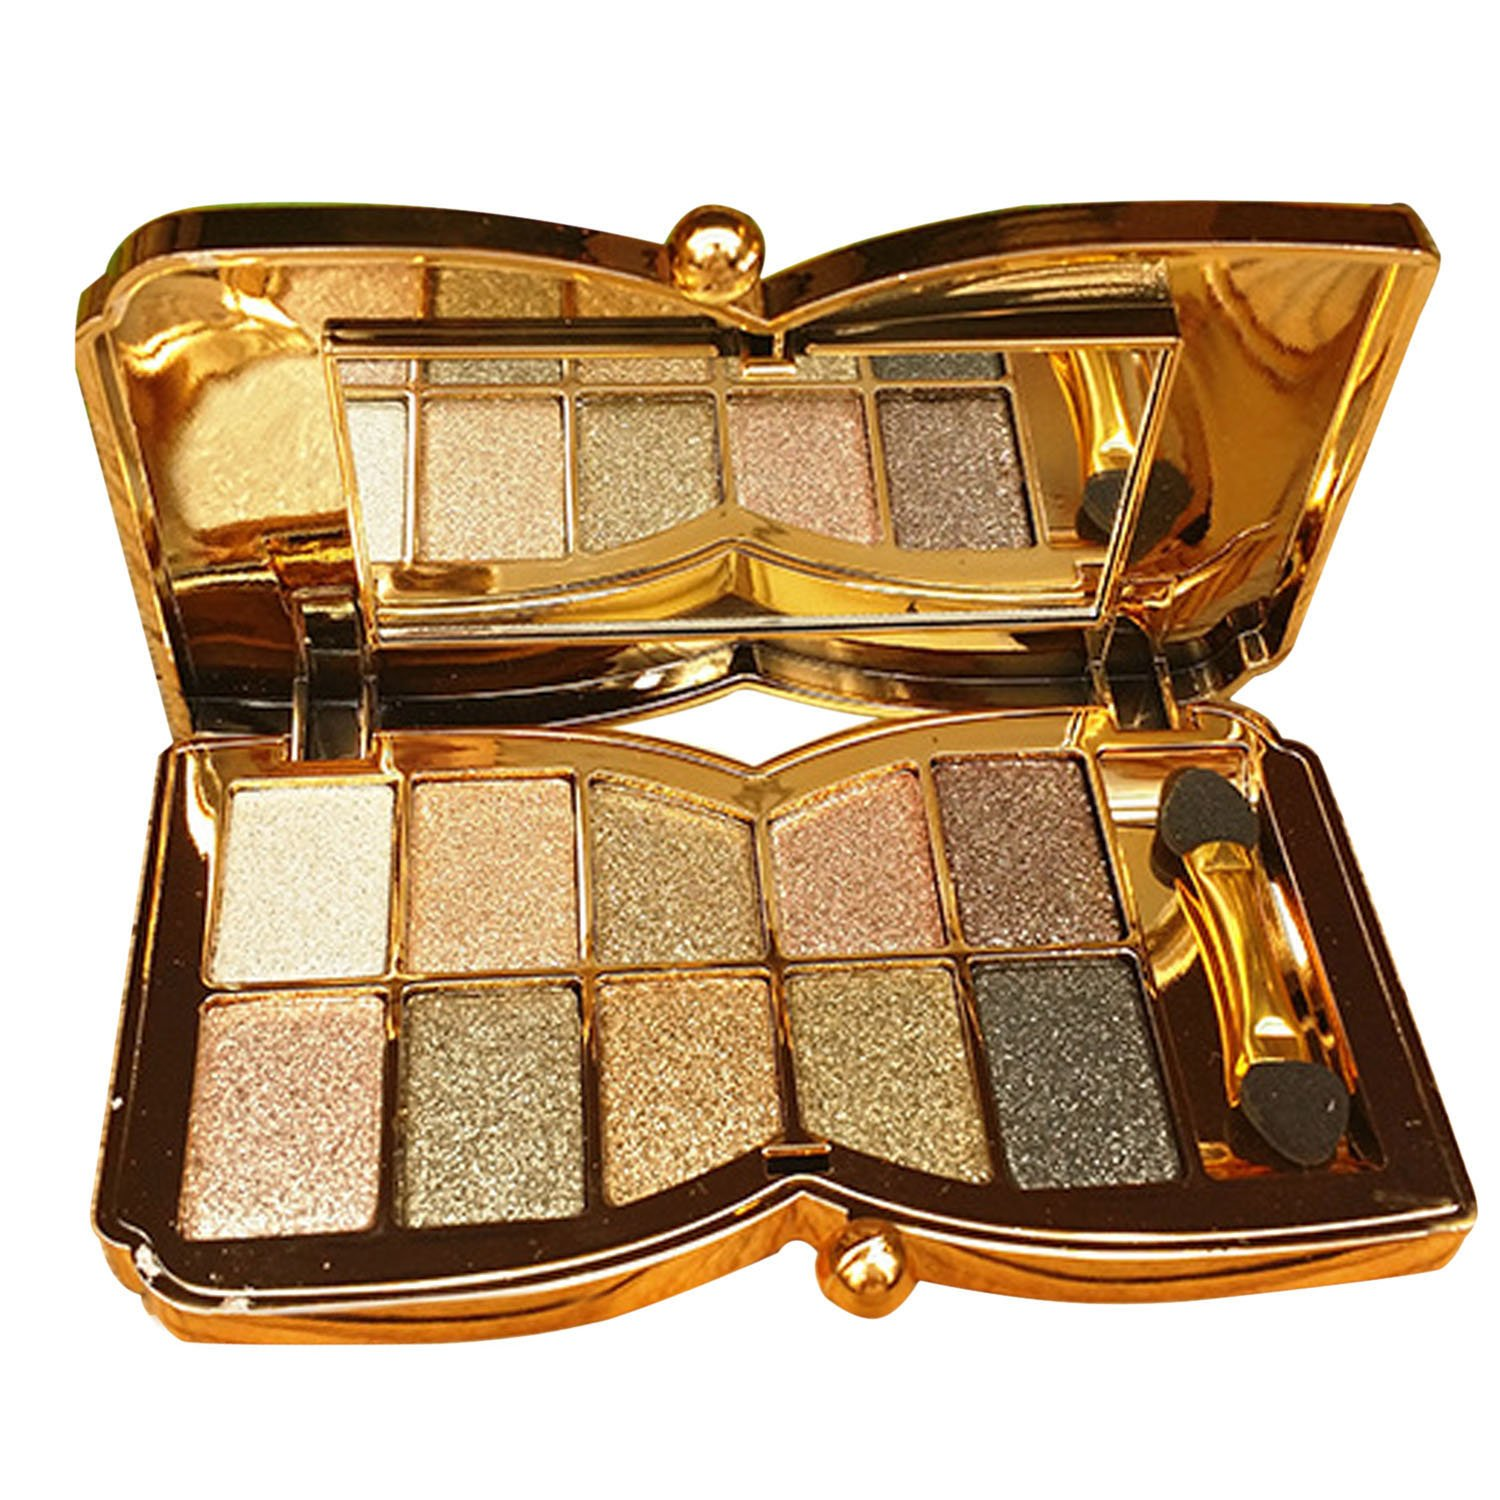 10 Colors Diamond Shining Eyeshadow Palette Makeup Cosmetic Foundation Eye shadow Palette with Double-sided Makeup Stick Tool Set Number 6 Elisona